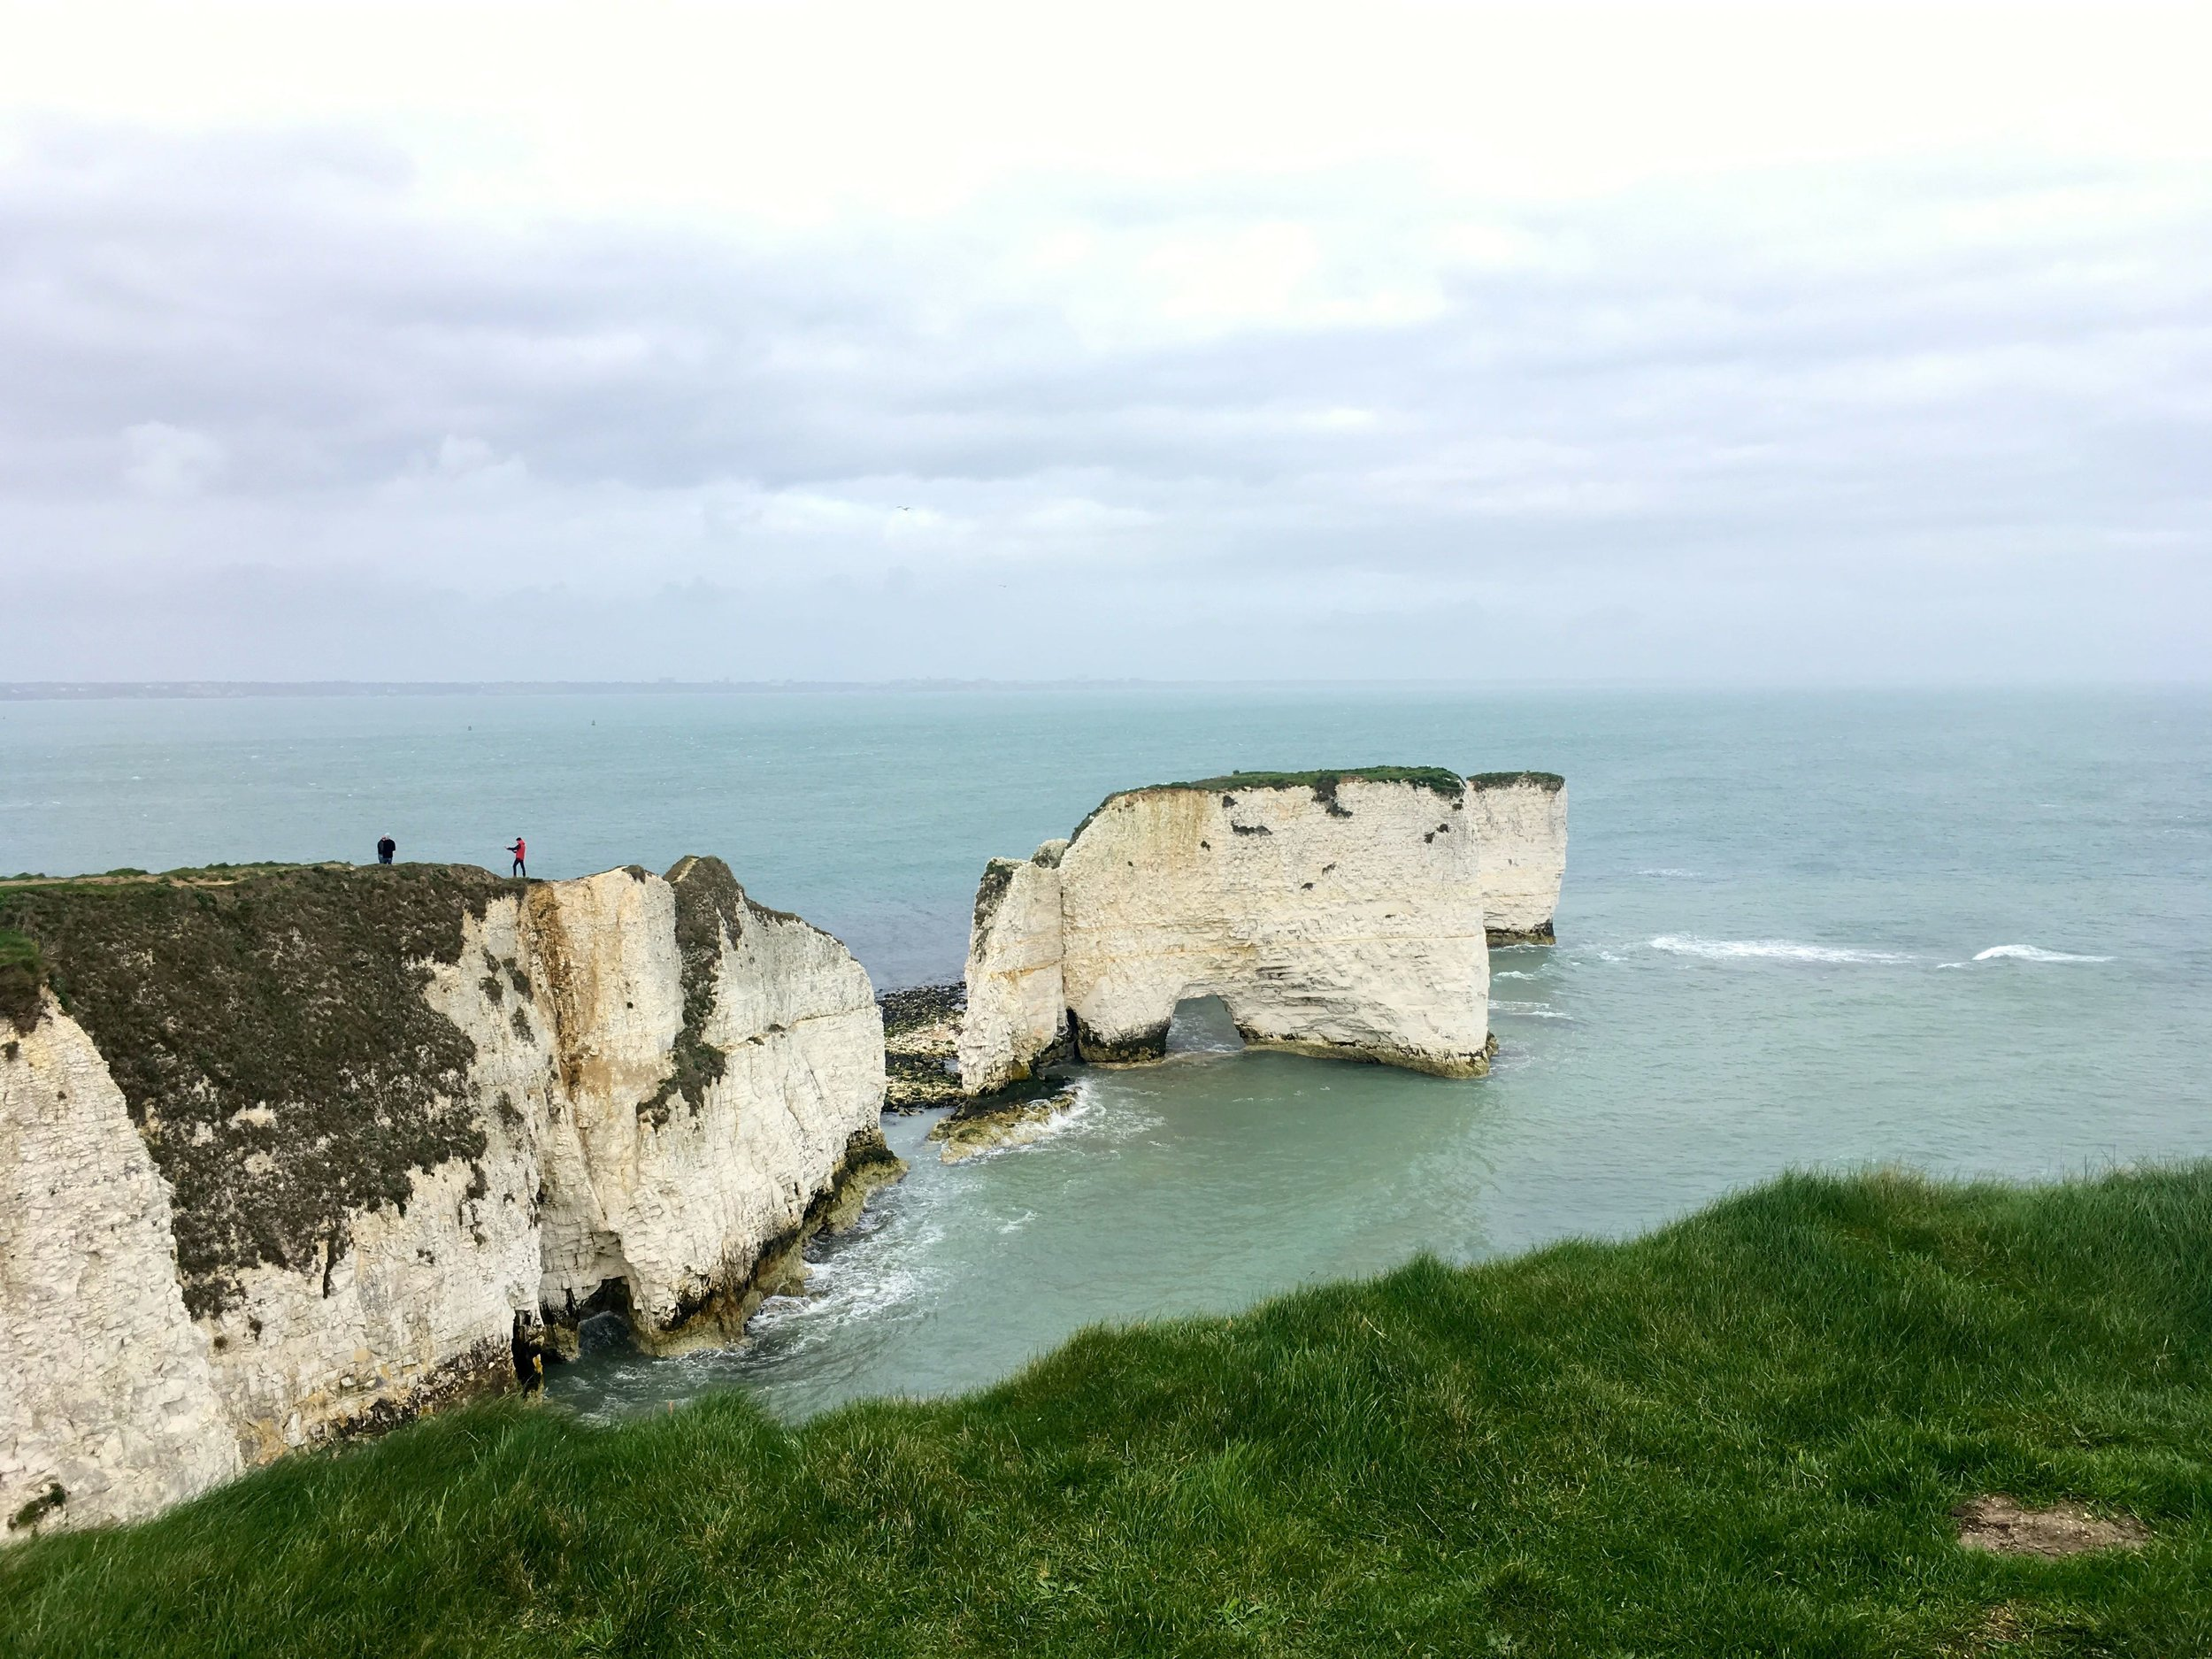 The wind was worth it though for the views of Old Harry rocks in Dorset